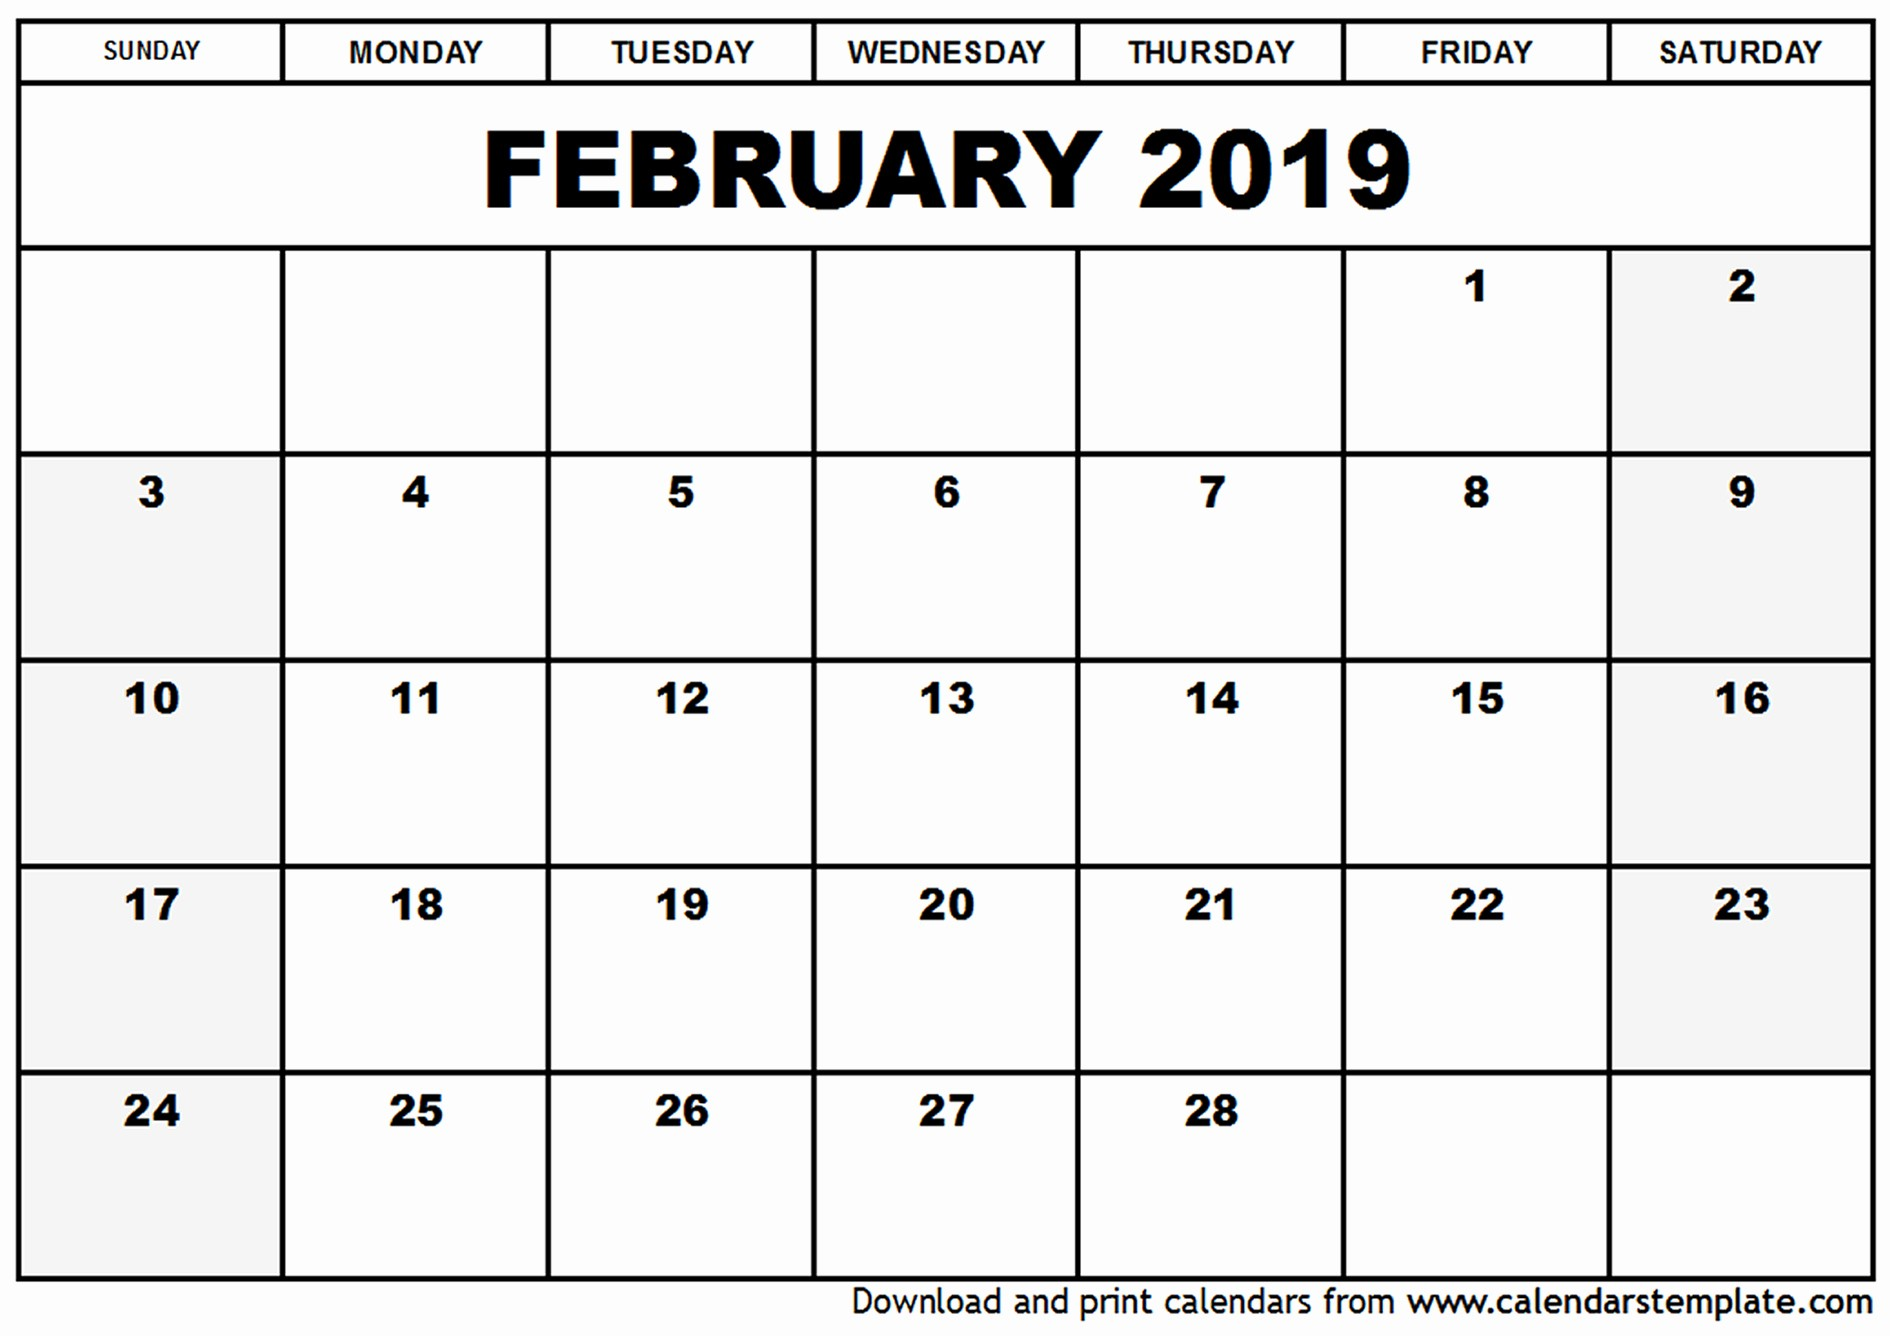 Printable 12 Month Calendar 2019 Awesome February 2019 Calendar Template – Month Printable Calendar